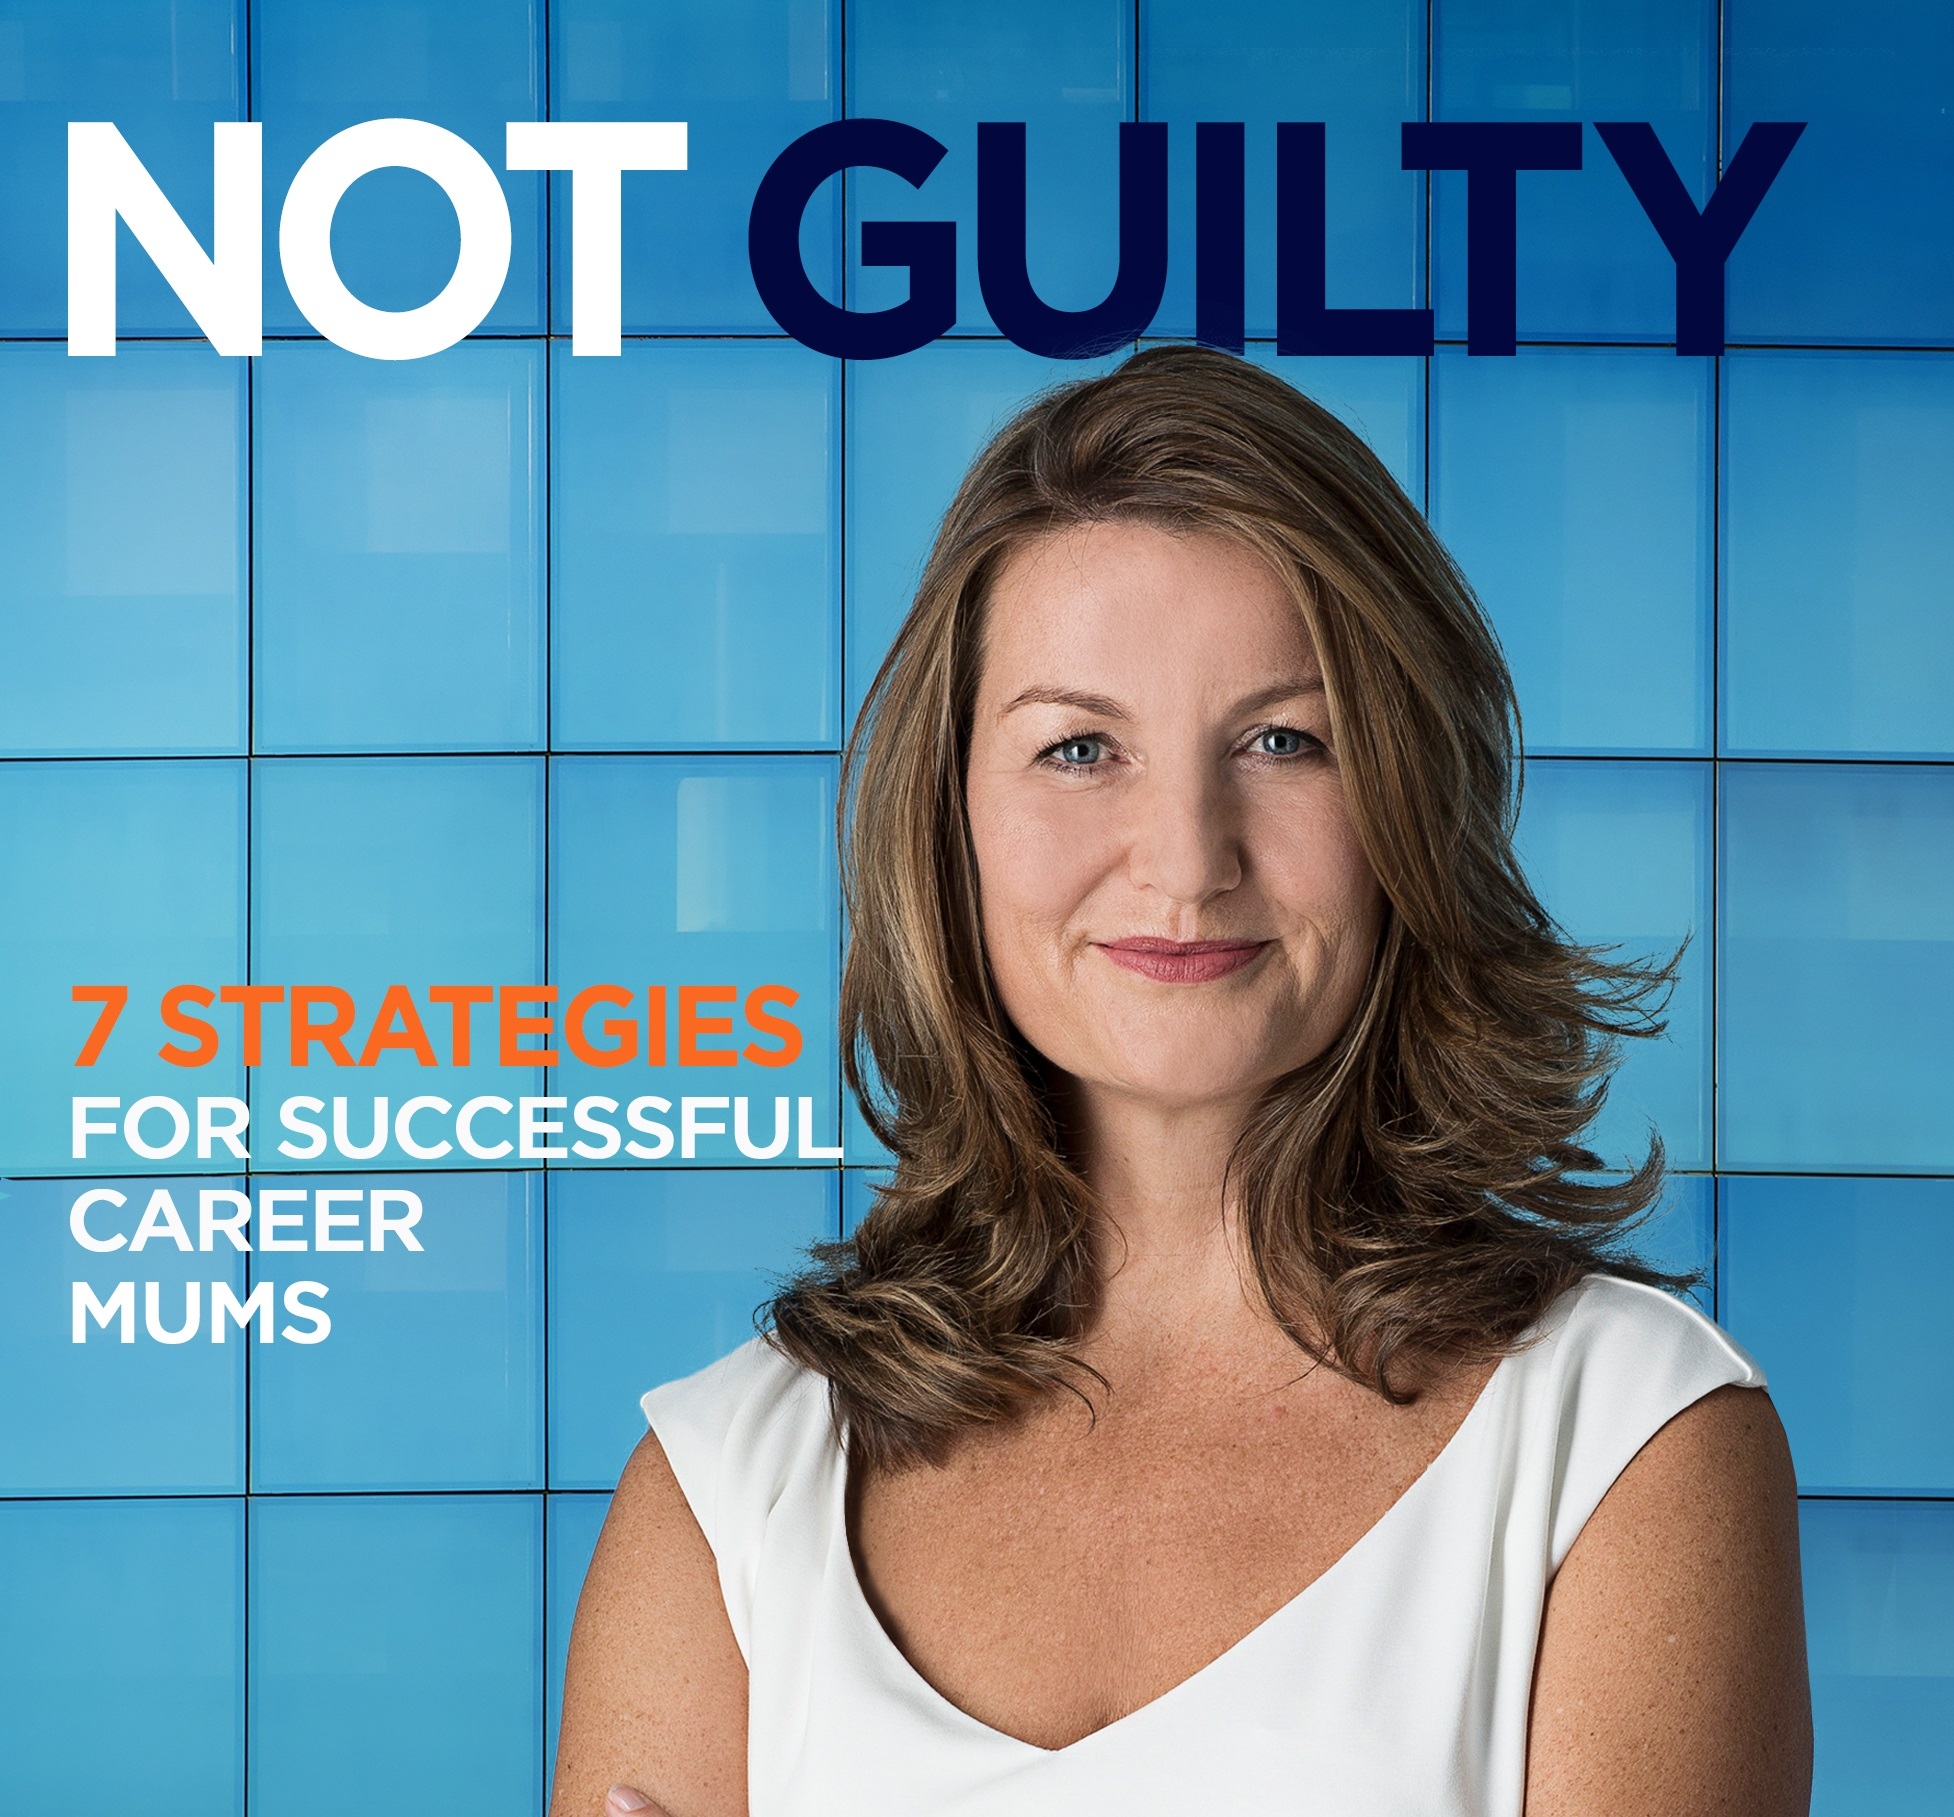 Author Talk: Nicolette Rubinsztein, Not Guilty